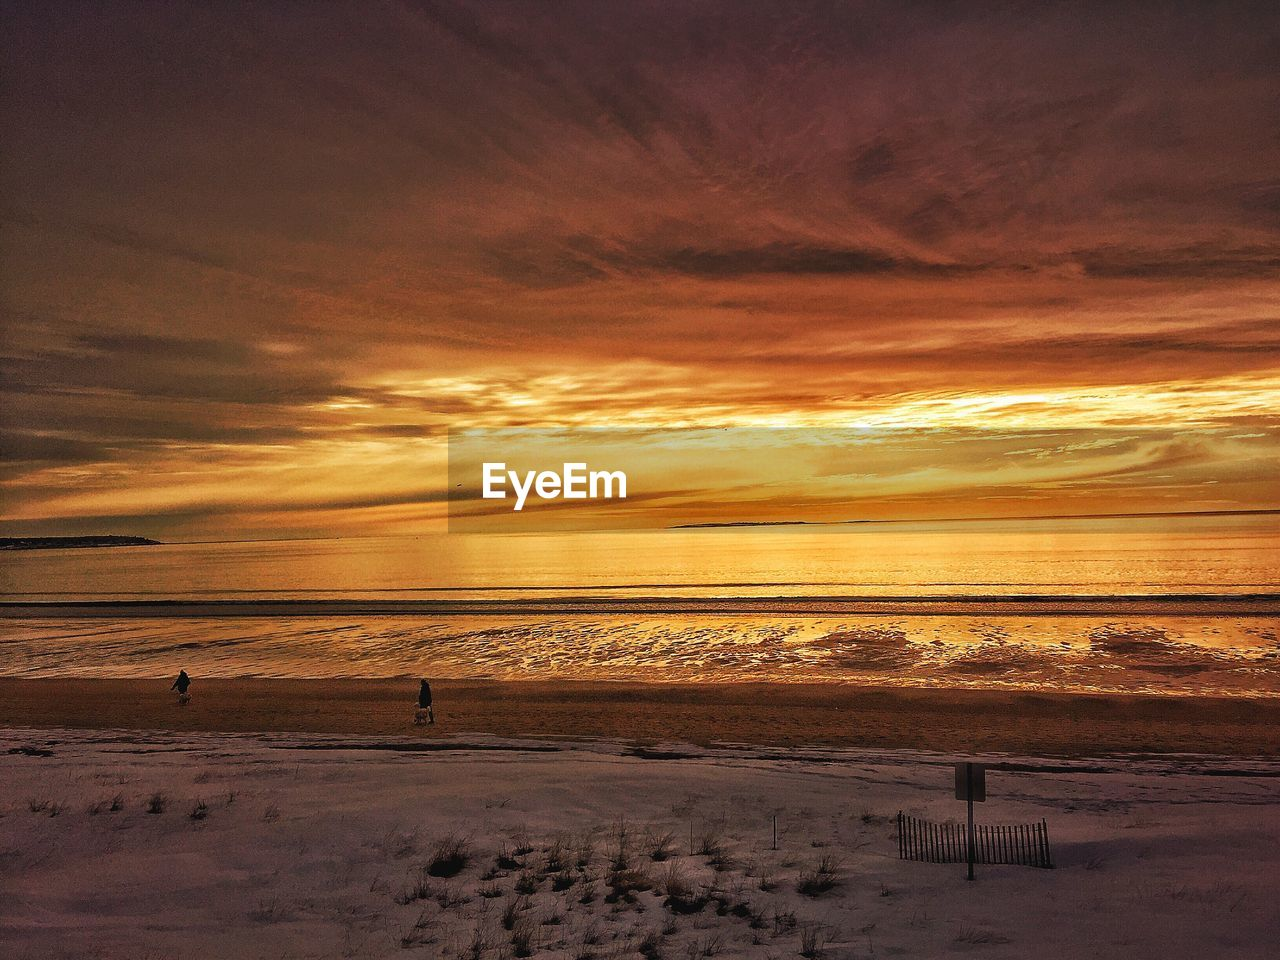 sunset, nature, beauty in nature, scenics, orange color, tranquil scene, sky, tranquility, cloud - sky, sea, water, silhouette, cold temperature, outdoors, horizon over water, beach, winter, snow, no people, day